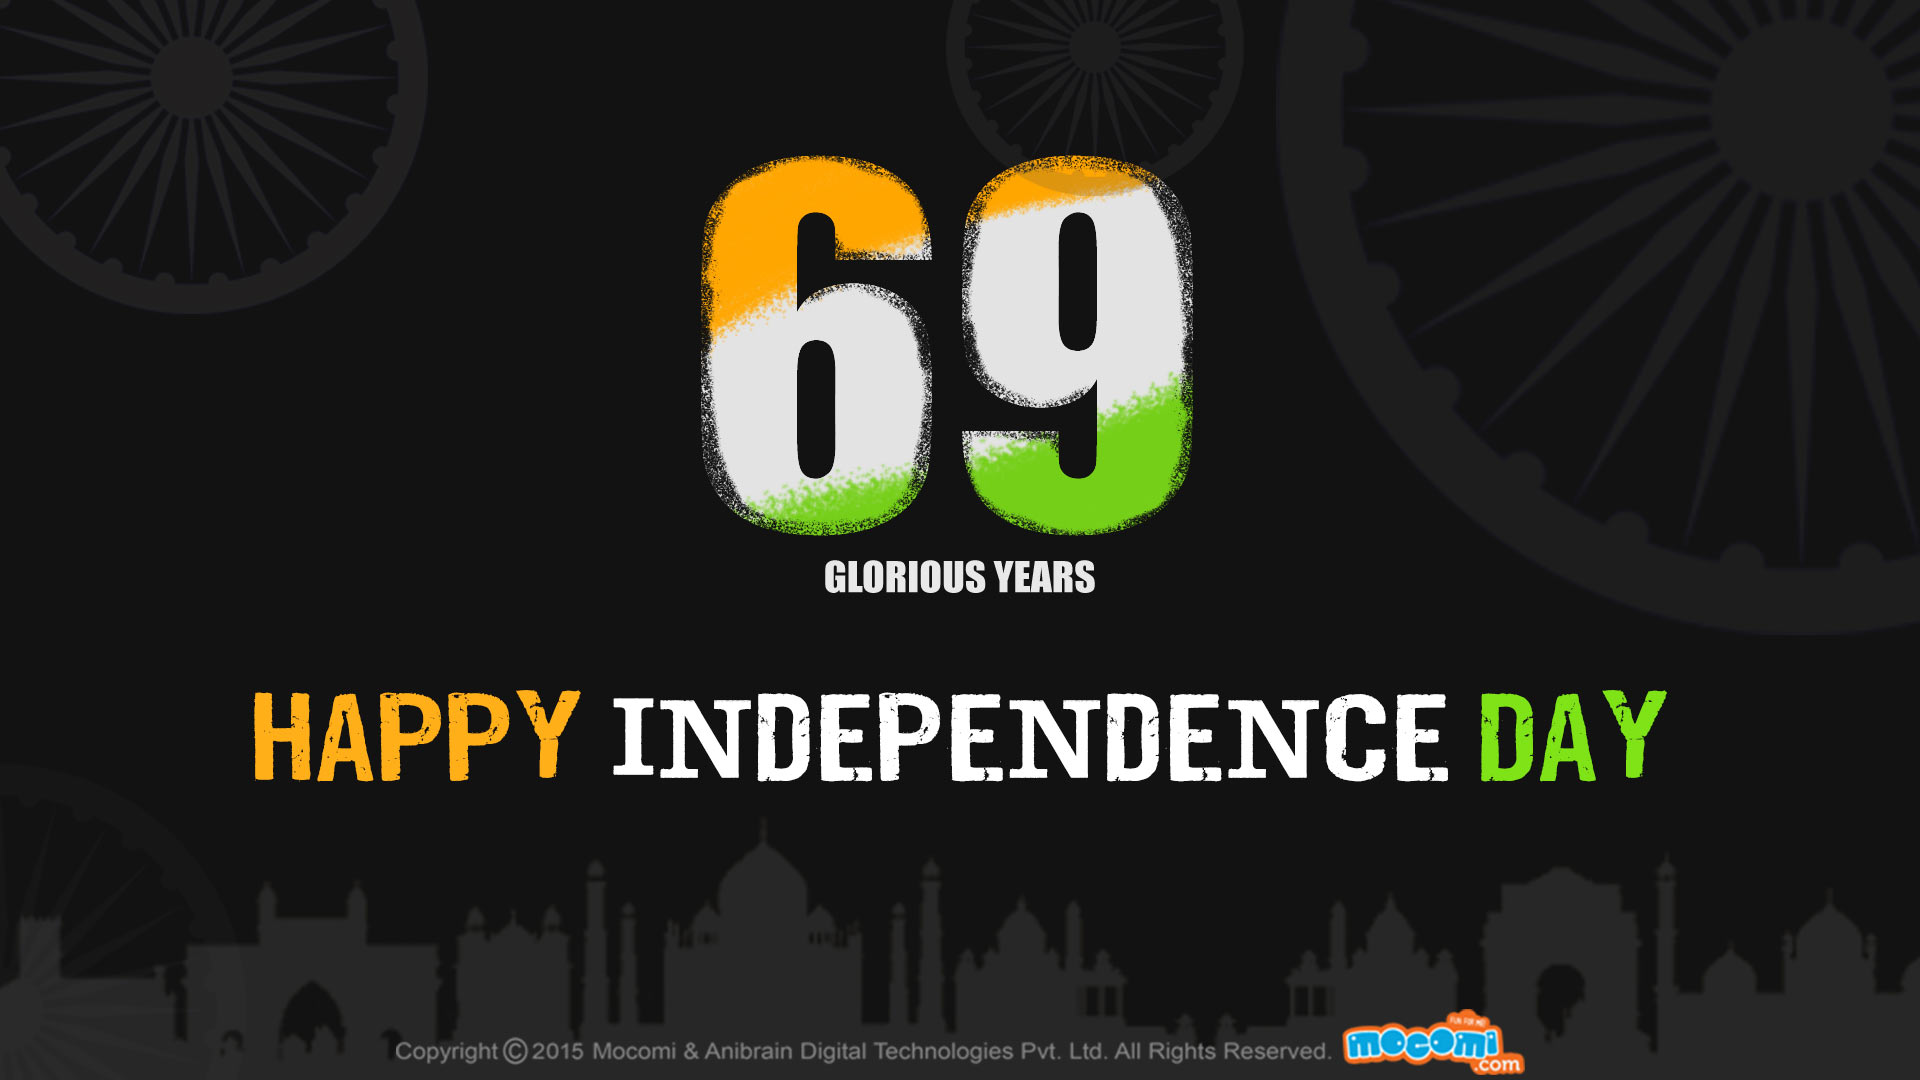 Happy Independence Day – 01